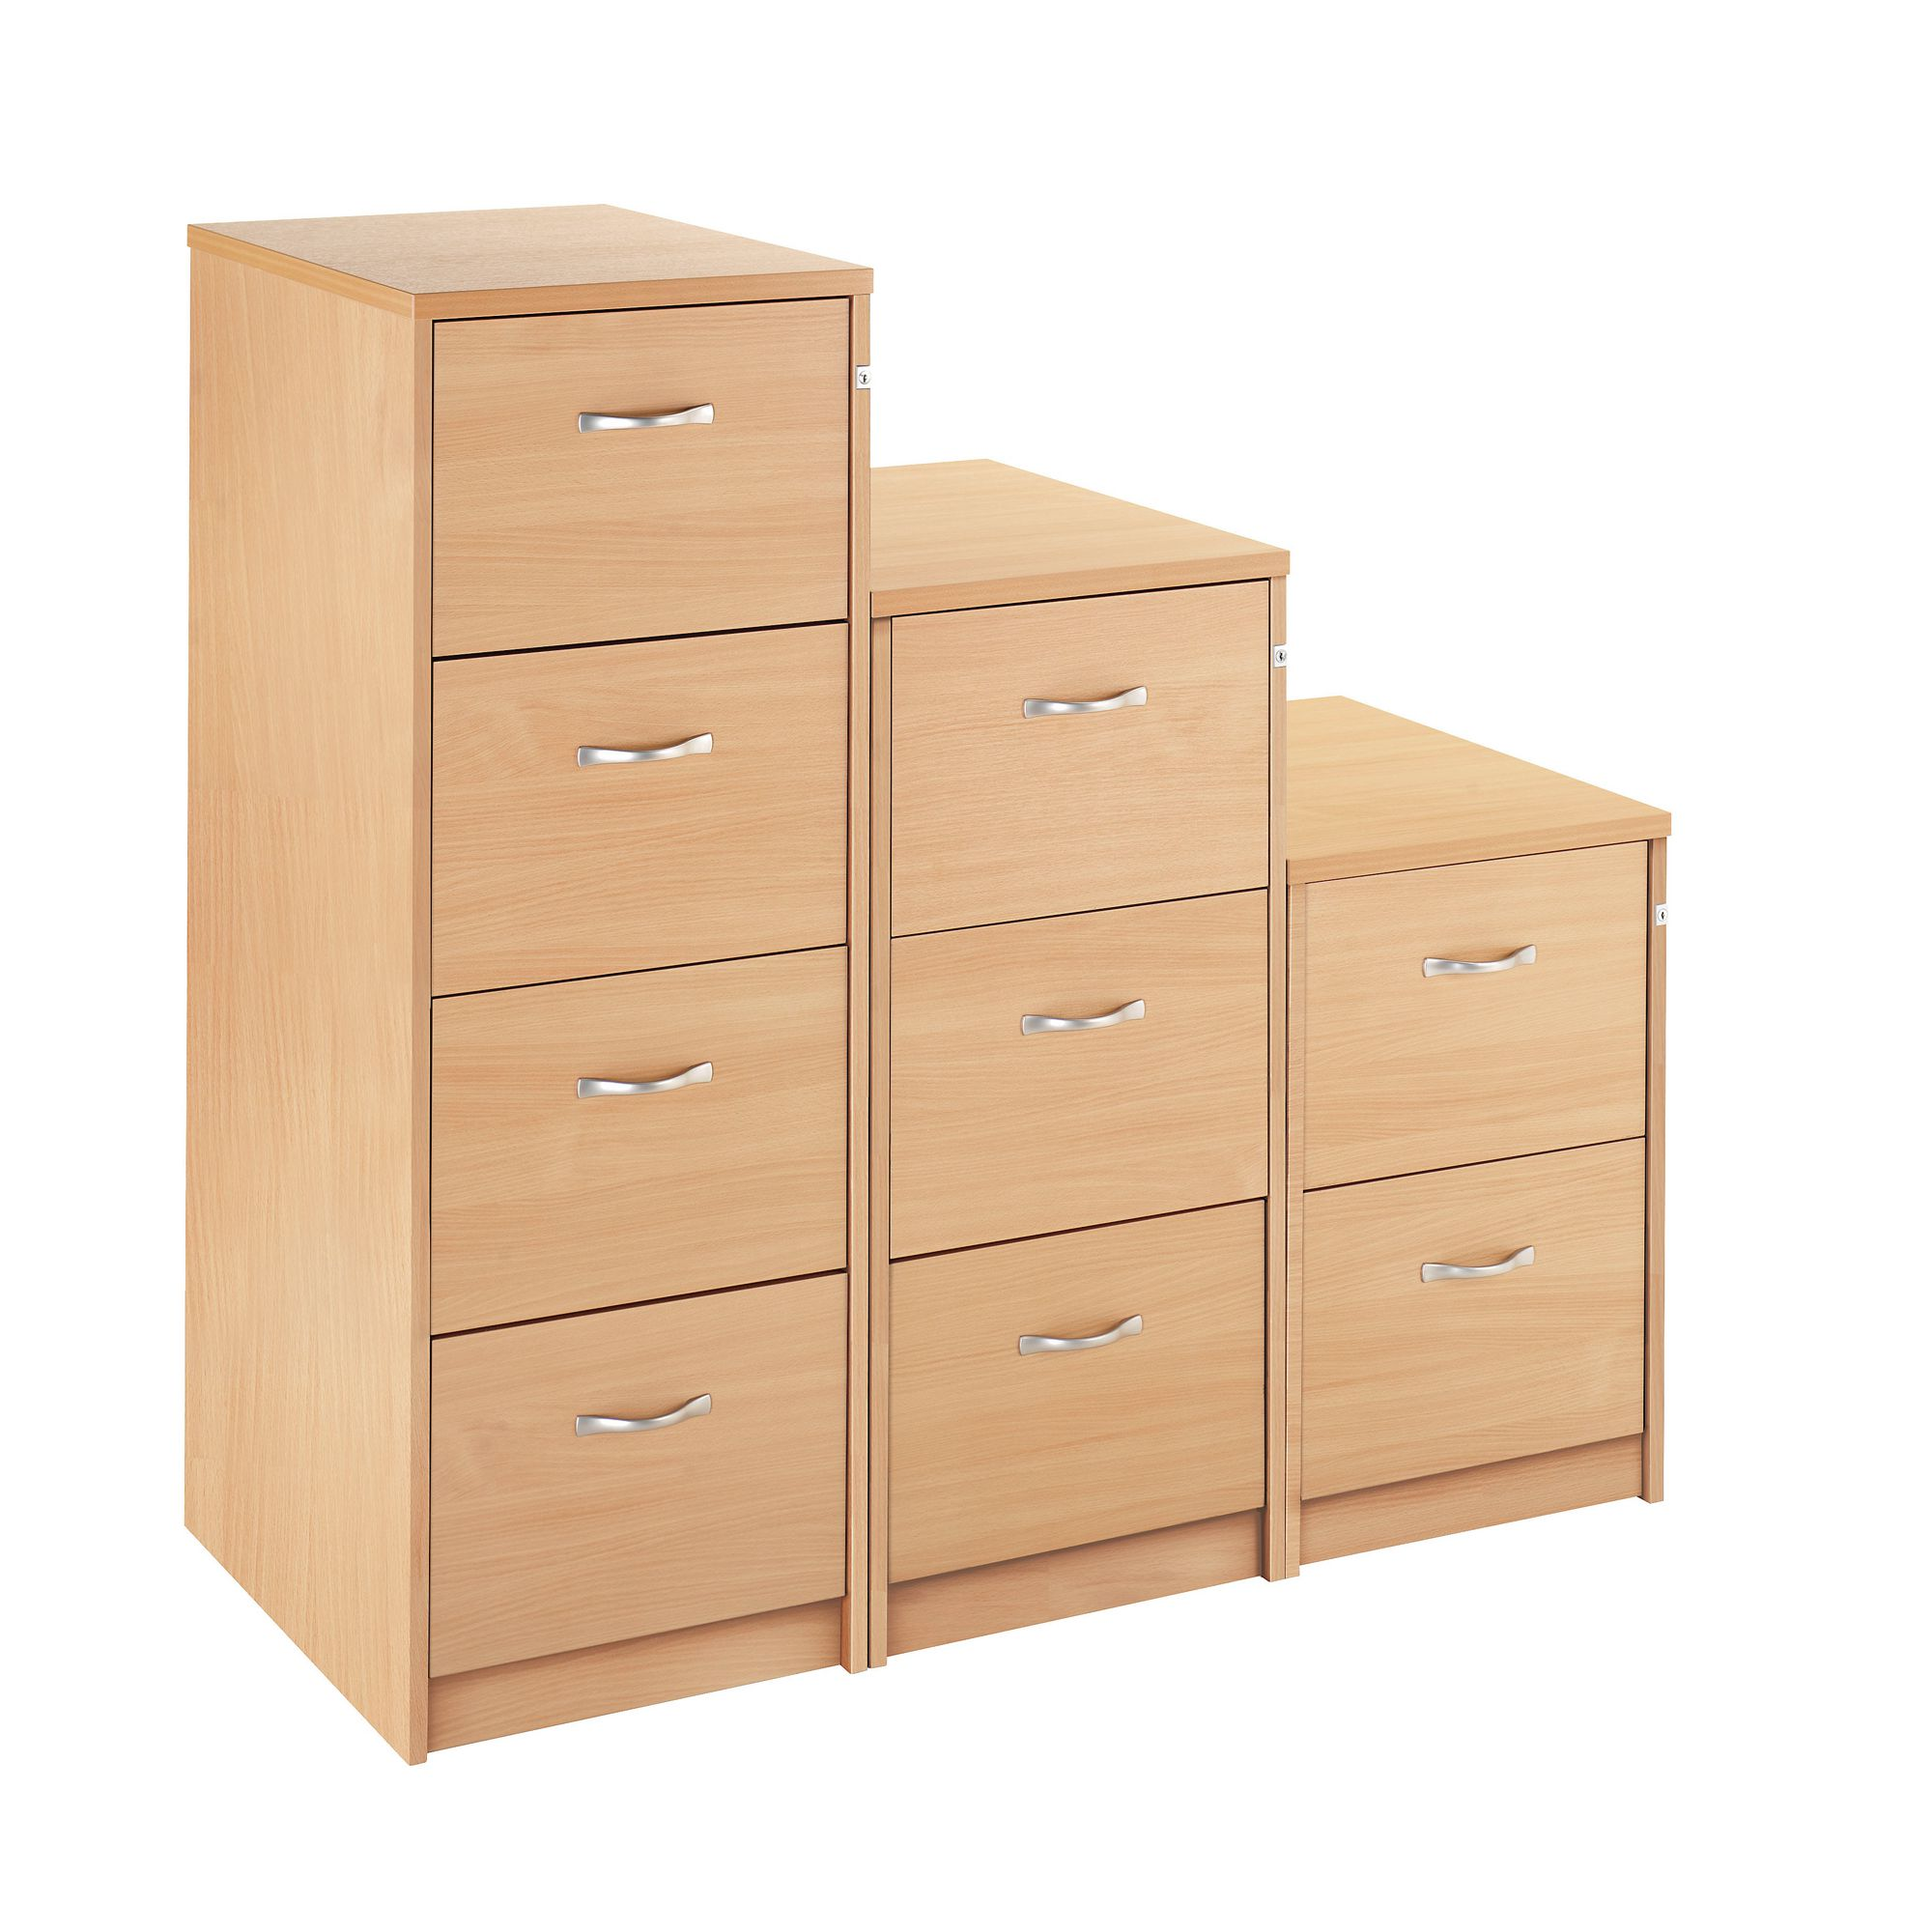 CM Wooden Filing Cabinet 4 Draw Beech